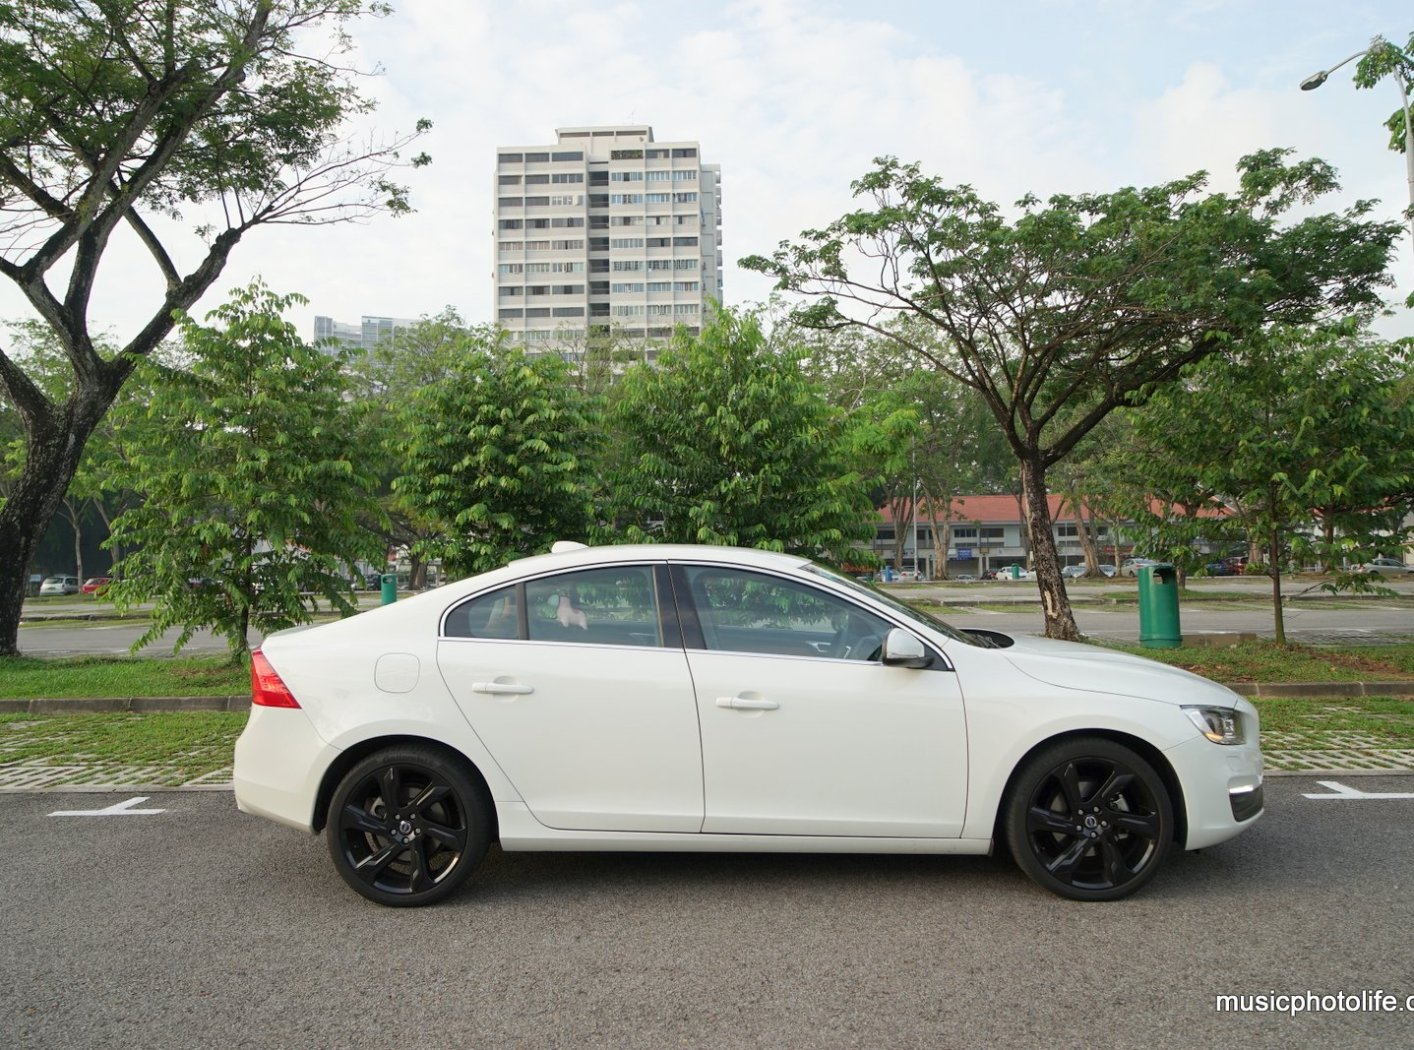 Volvo S60 T5 Drive-E (2015): Sports Sedan Test Drive Review